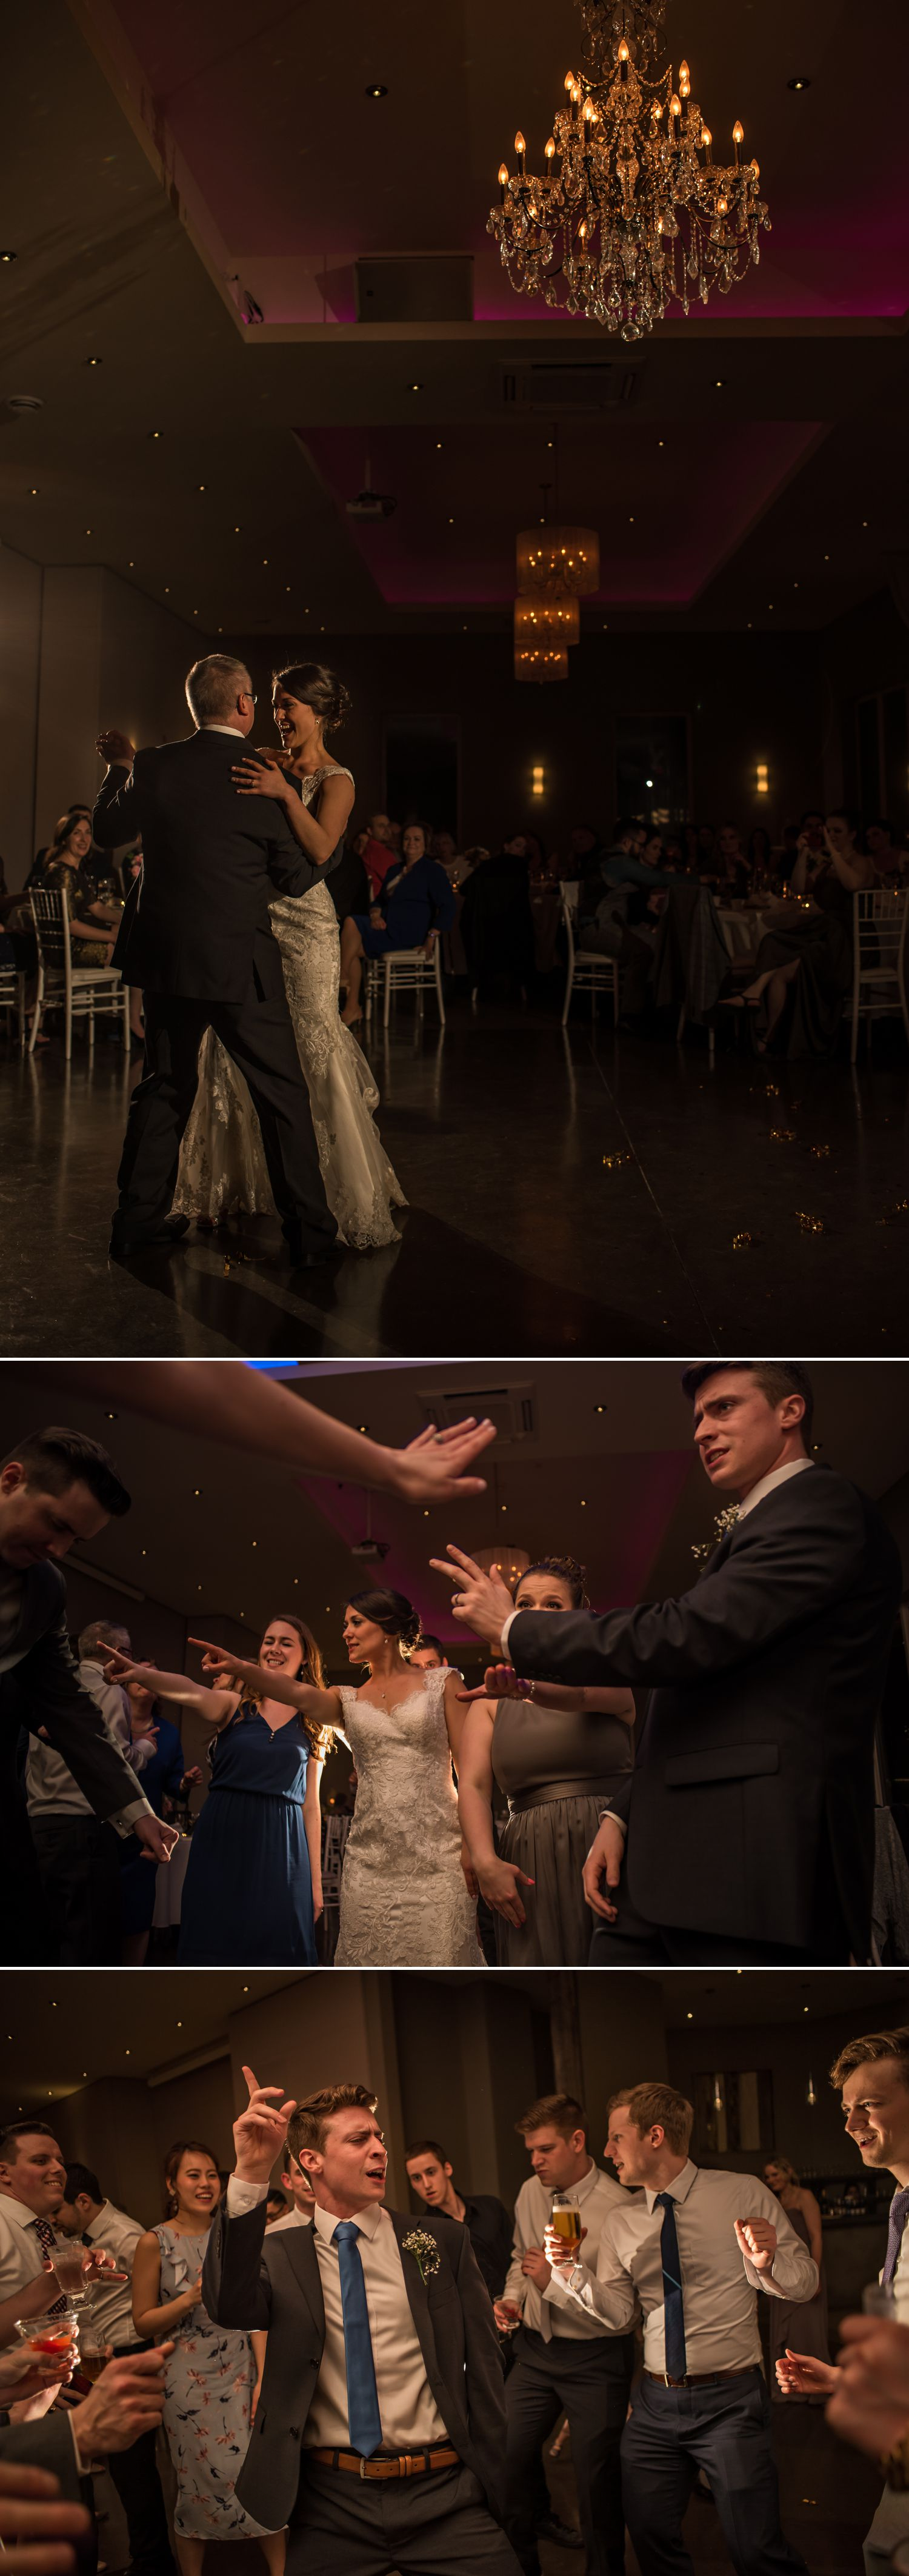 candid-dance-party-moments-at-a-le-belvedere-wedding-in-wakefield-quebec.jpg